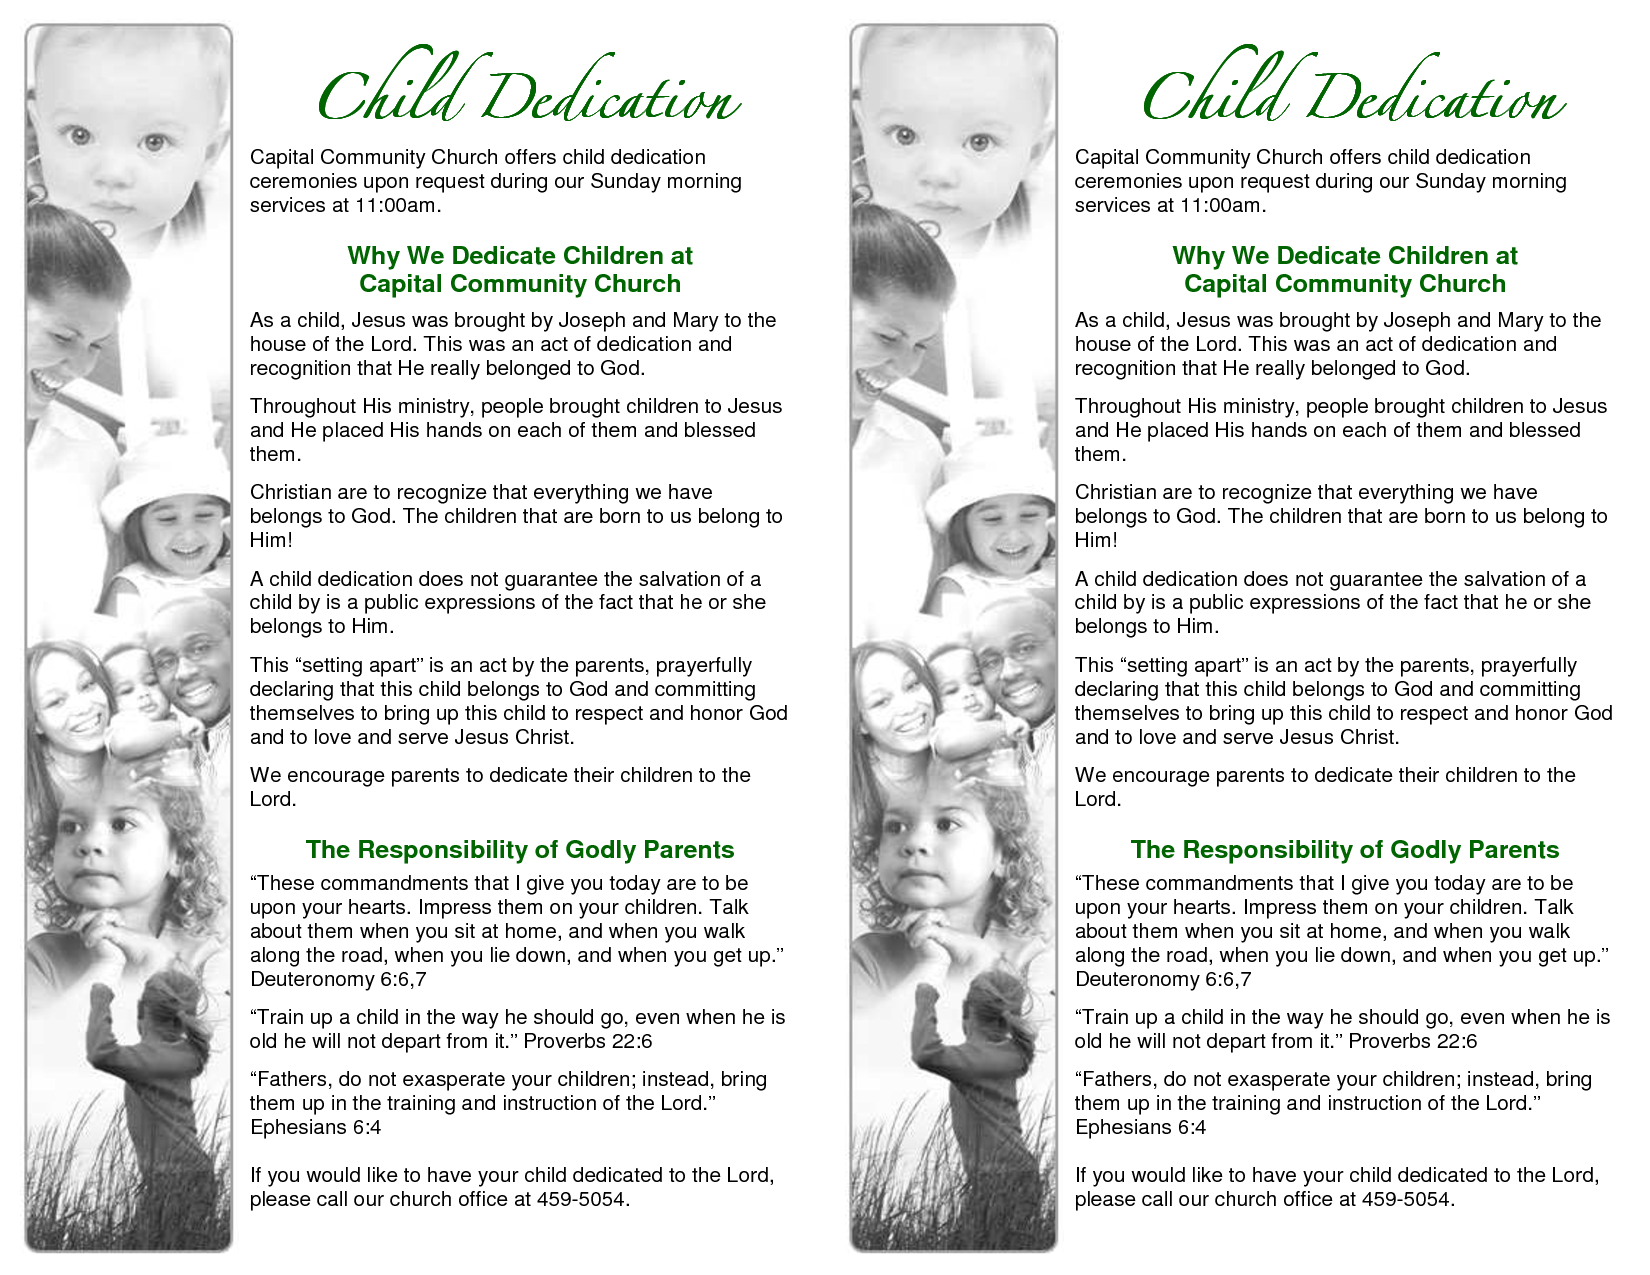 Baby Dedication Ceremony Examples | Sample Baby Dedication ...